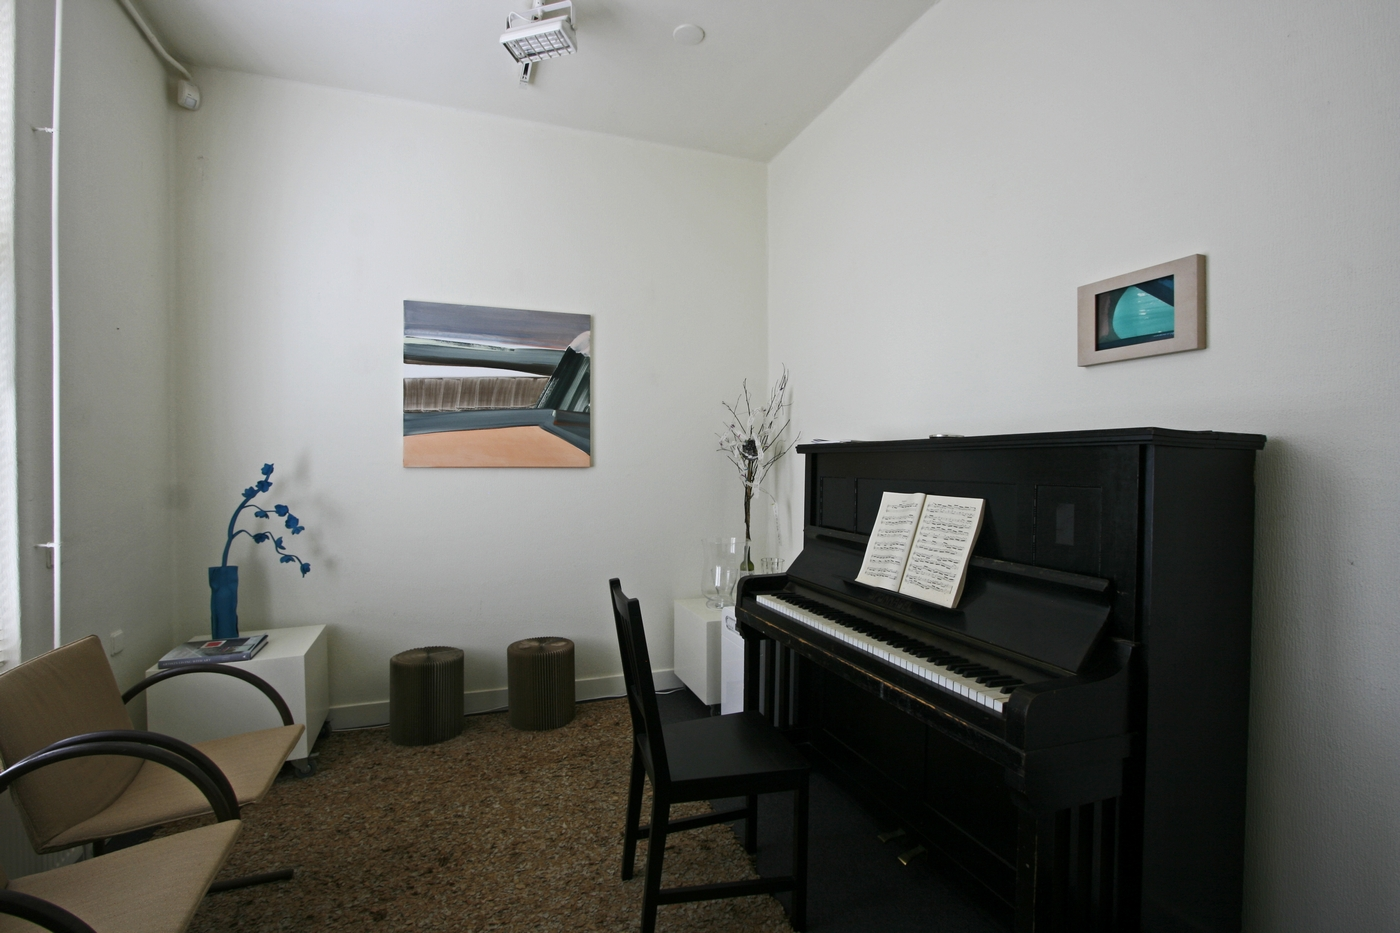 the piano room with a painting and a watercolor [Marena Seeling]